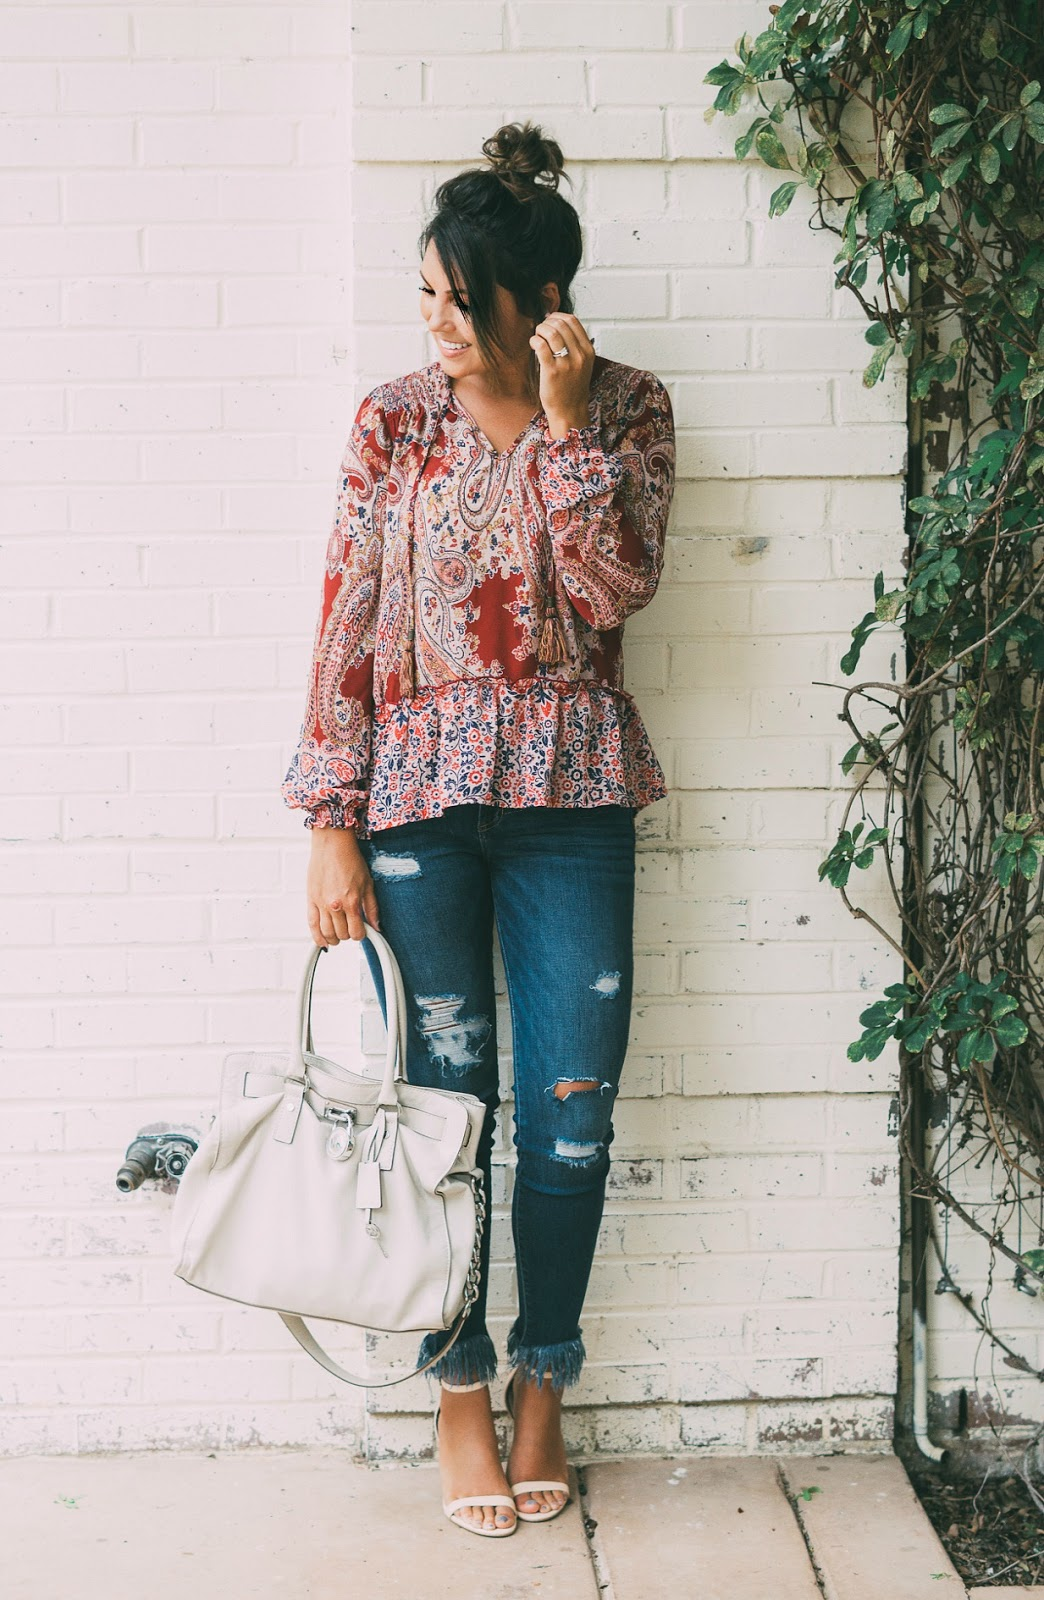 knox rose target, michael kors hamilton, paisley top, fringe denim